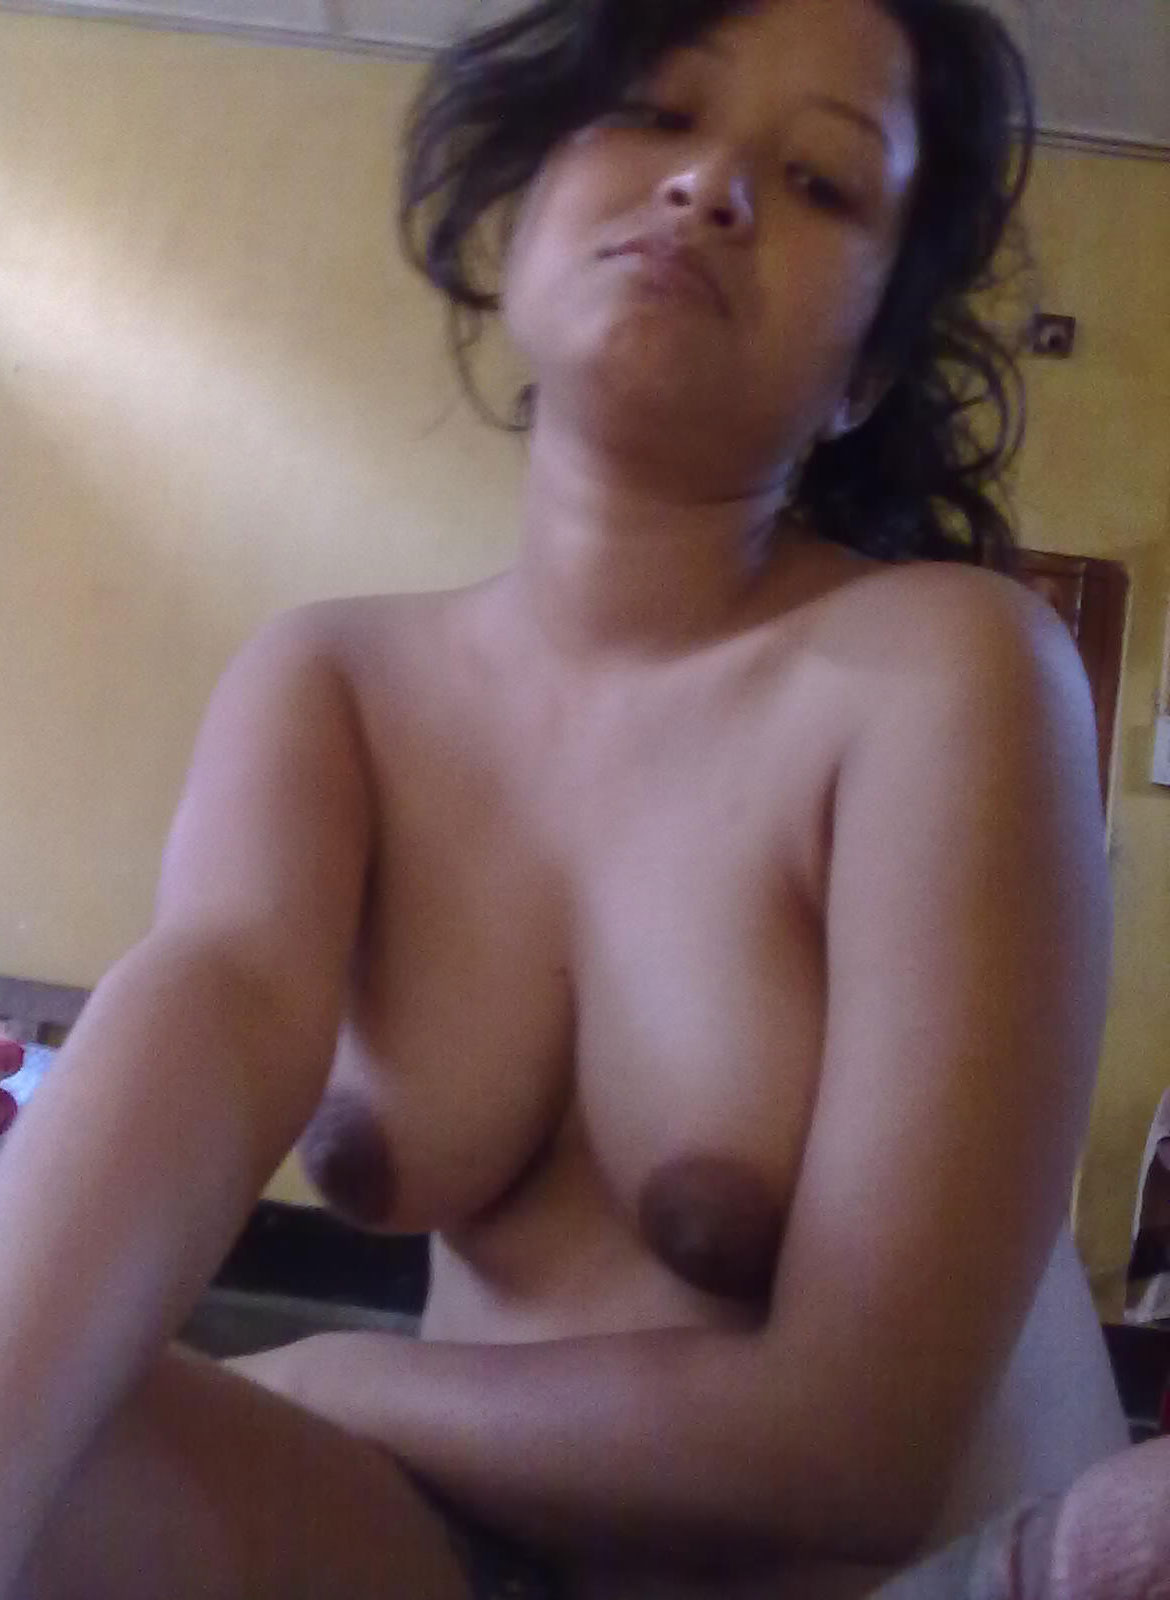 Pretty Desi Indian Babes Nude Cunts and Boobs Erotic Photos